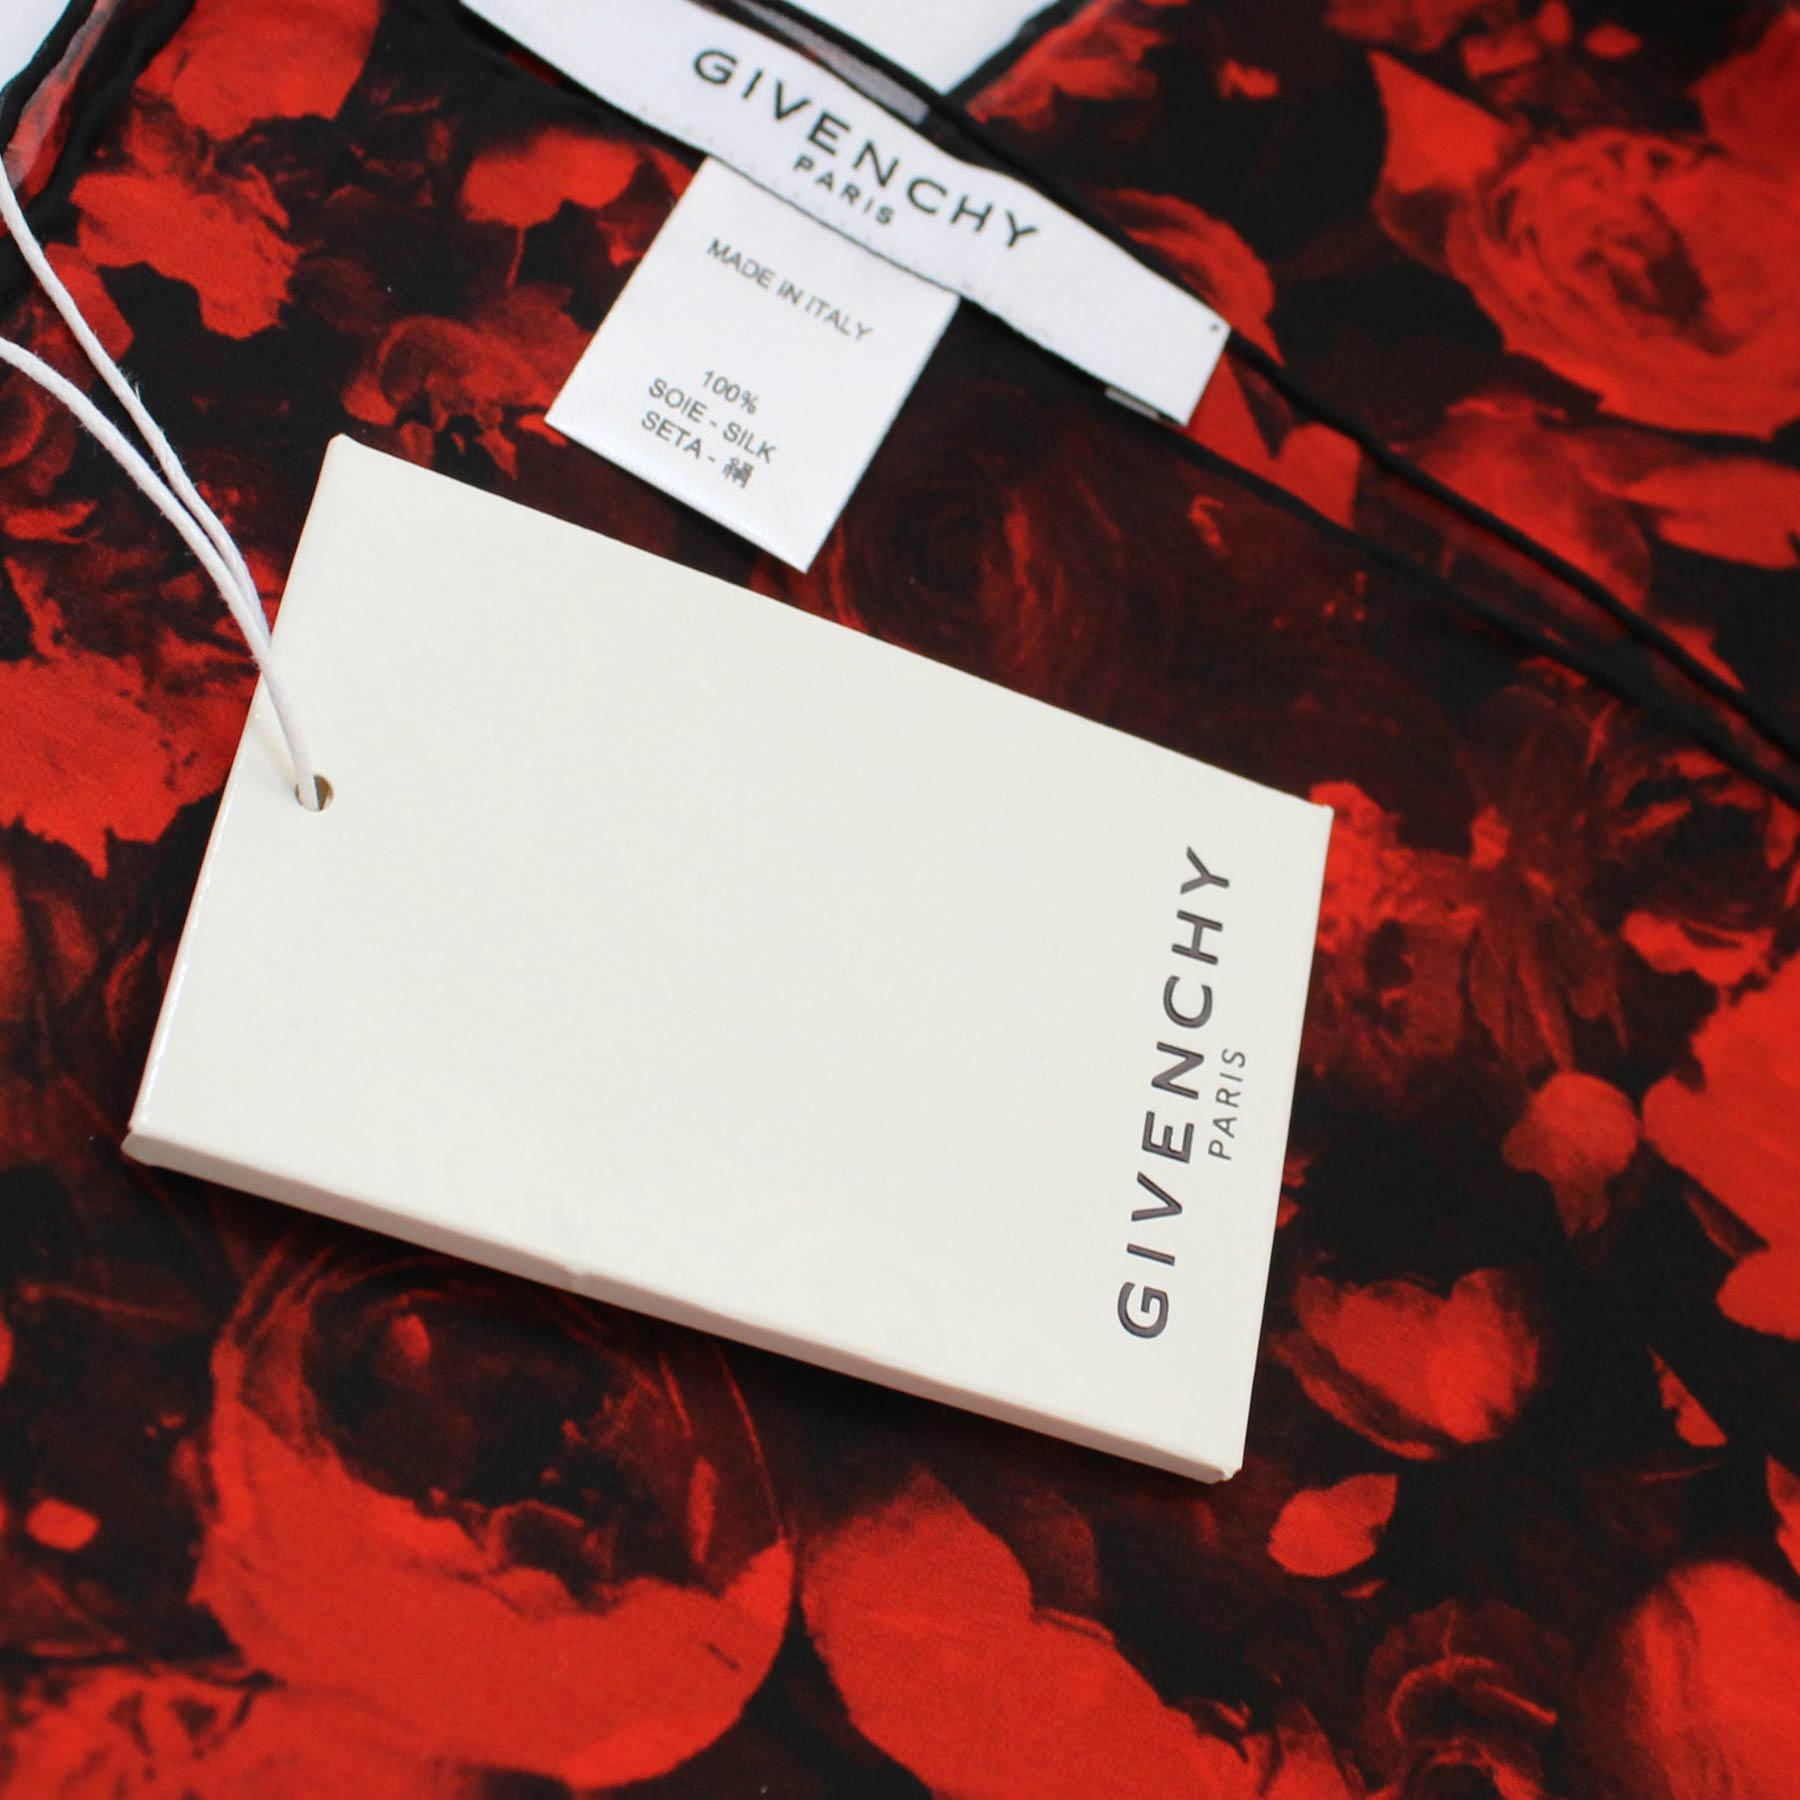 Givenchy Scarf Black Red Roses Large Chiffon Silk Square Wrap